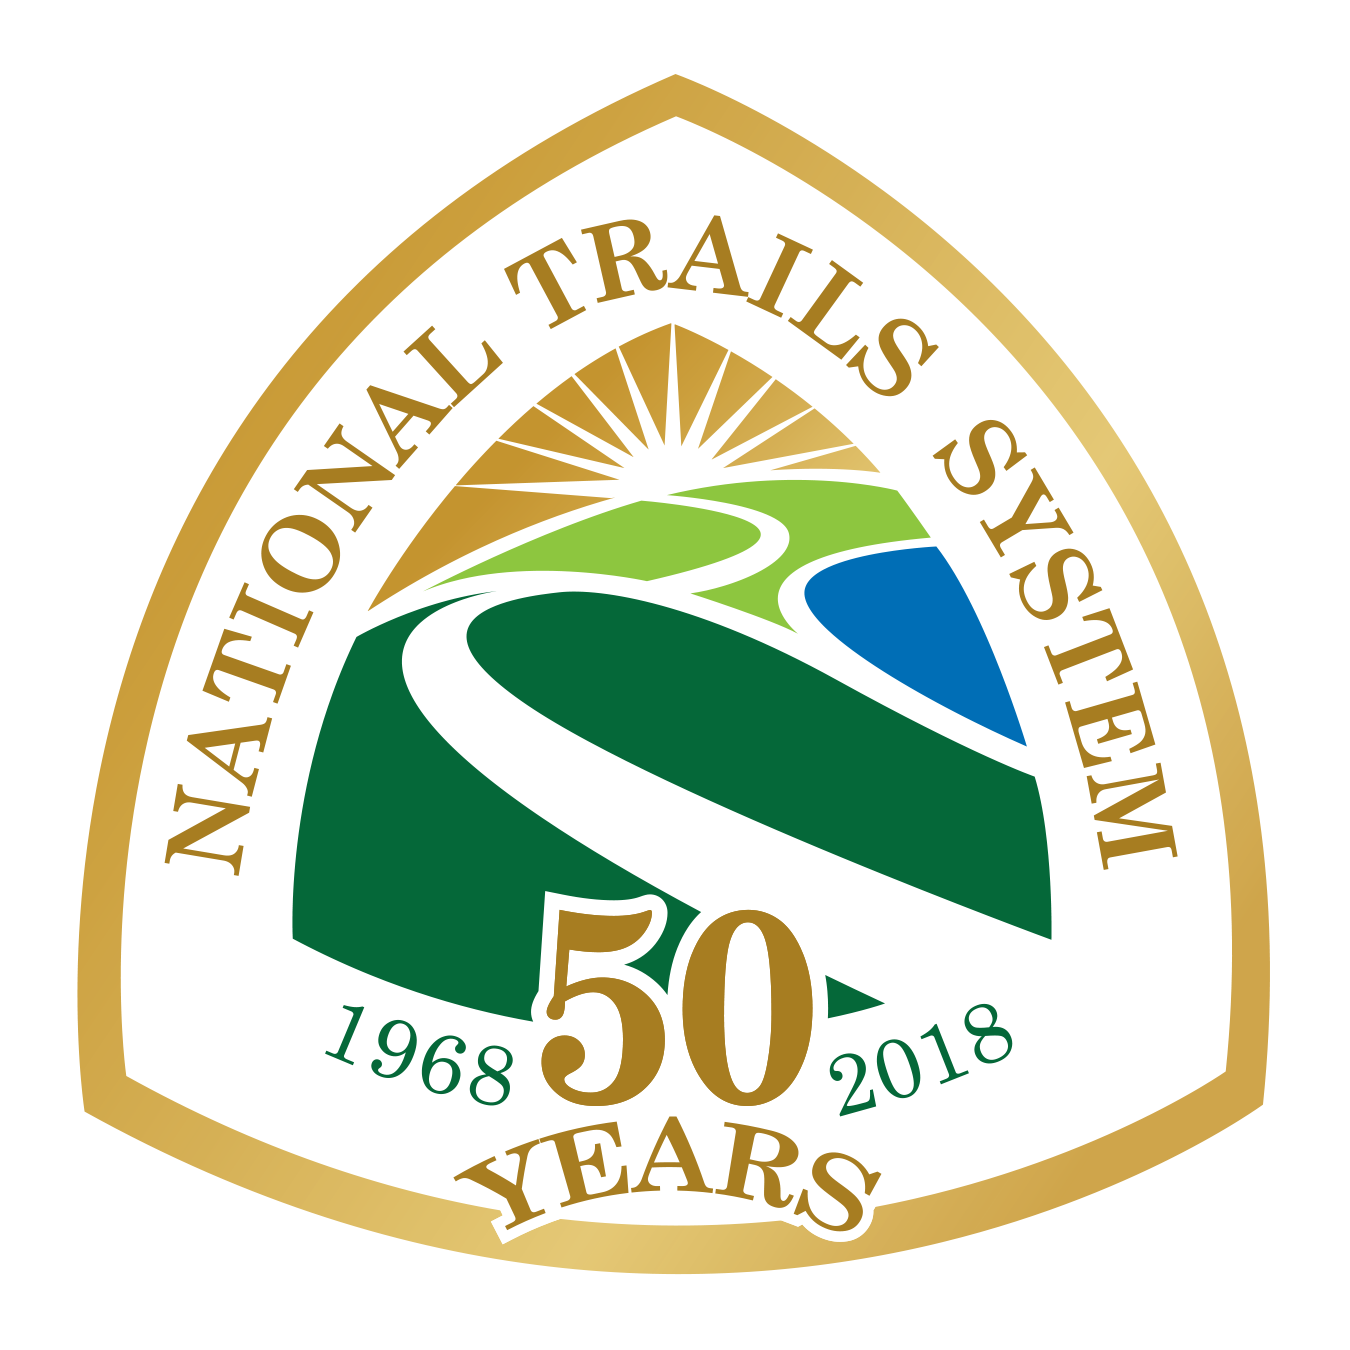 National Trails System 50th Anniversary logo